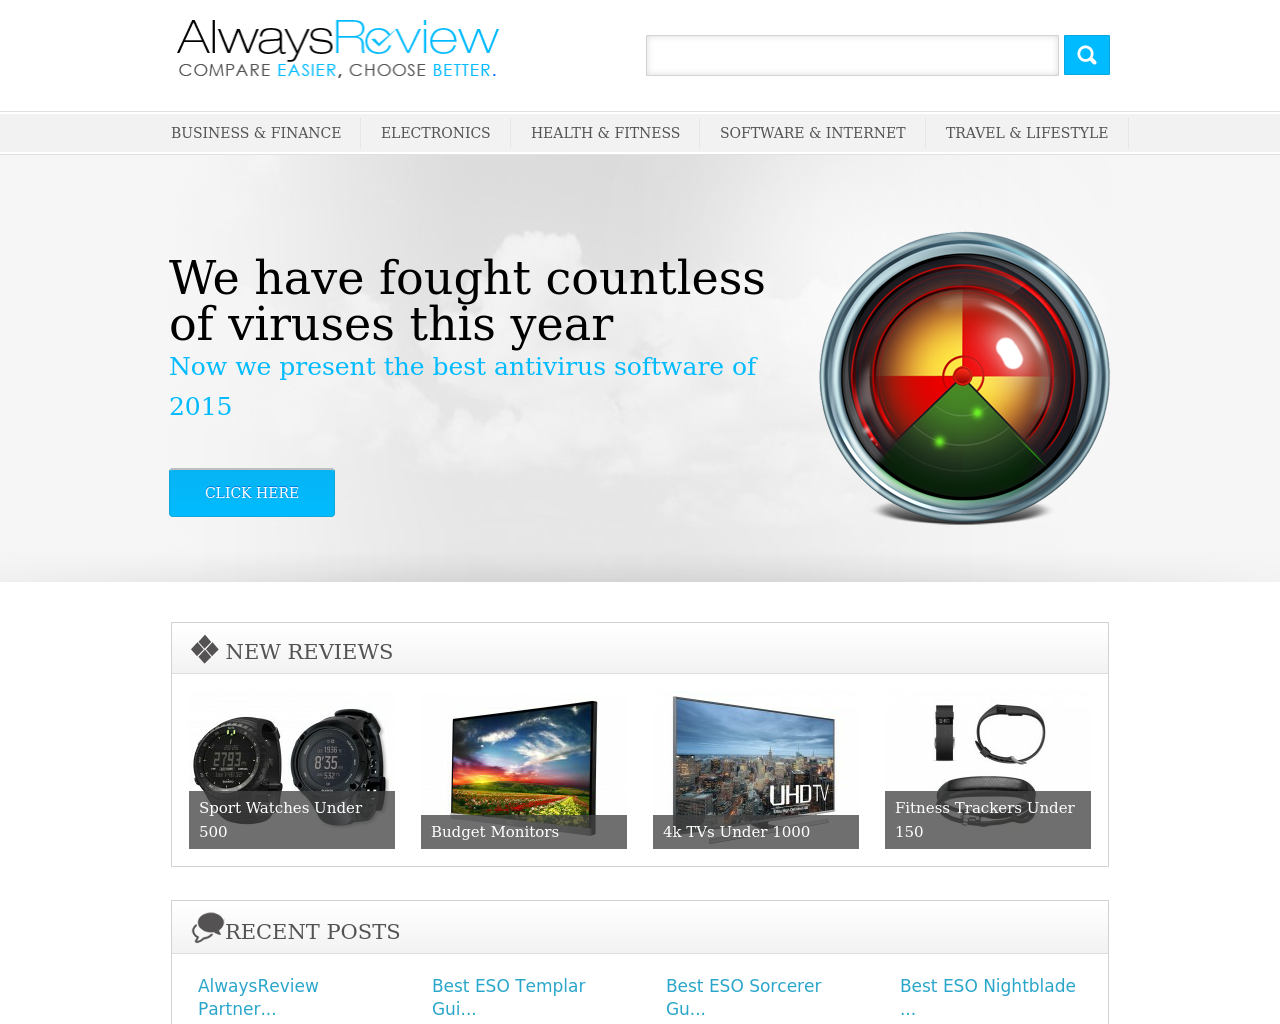 AlwaysReview-Advertising-Reviews-Pricing